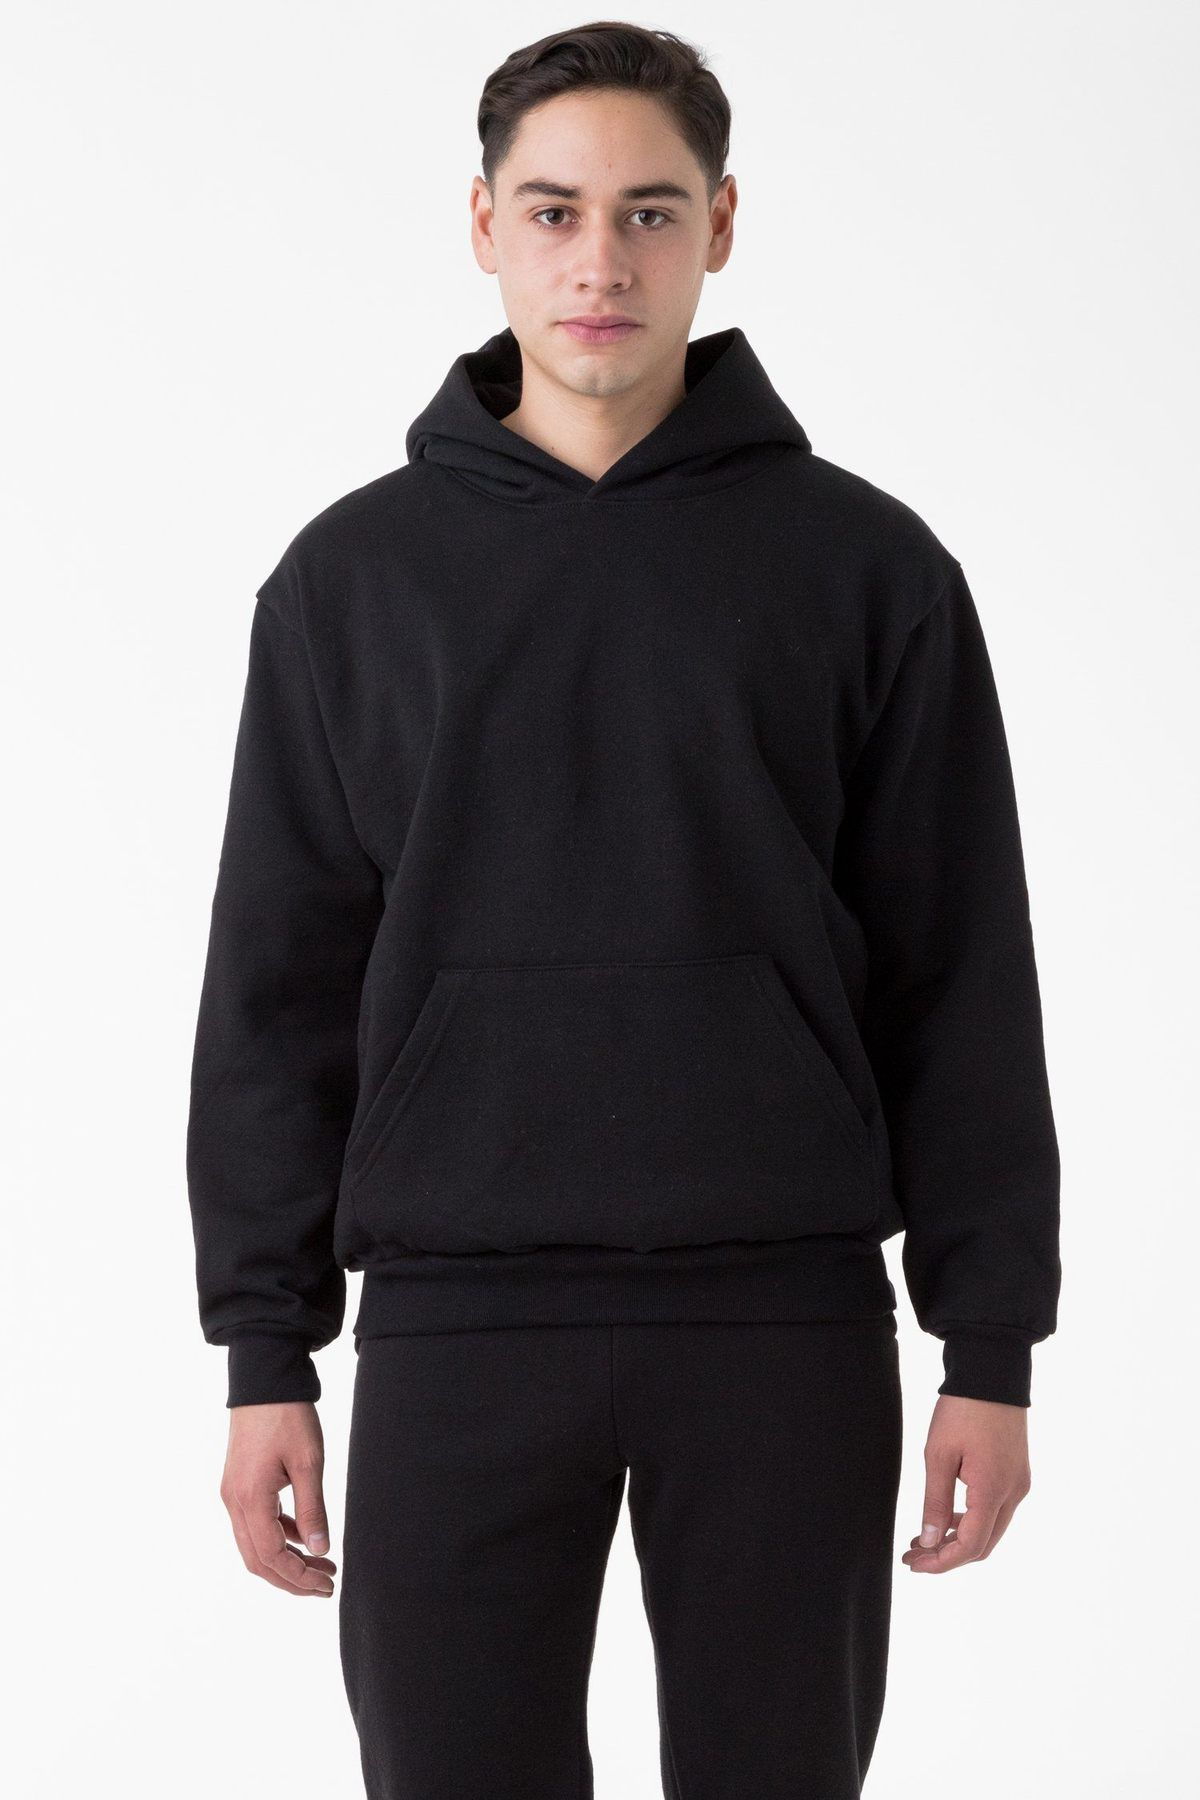 Hf09 14oz Heavy Fleece Hooded Pullover Sweatshirt In 2020 Hooded Pullover Black Sweatshirts Mens Sweatshirts